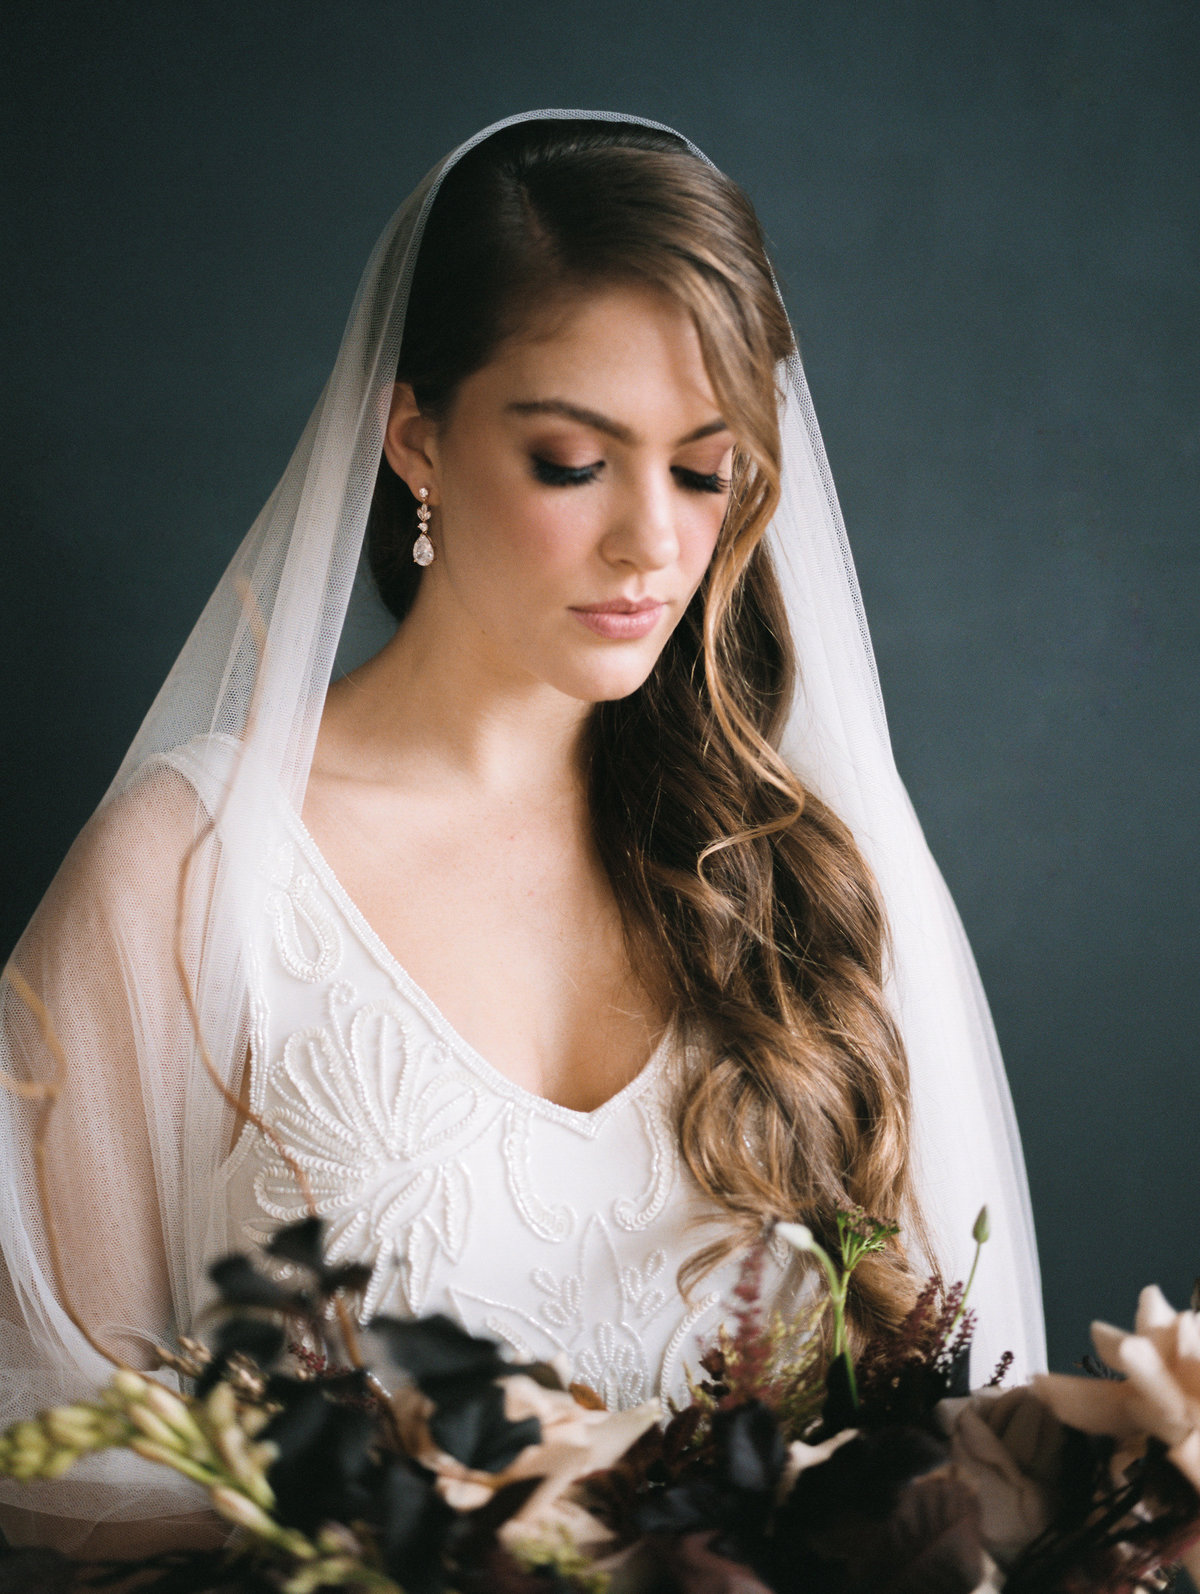 WHEN-SHE-KNEW-PHOTOGRAPHY-STYLED-WEDDING-EDITORIAL-OREGON-49